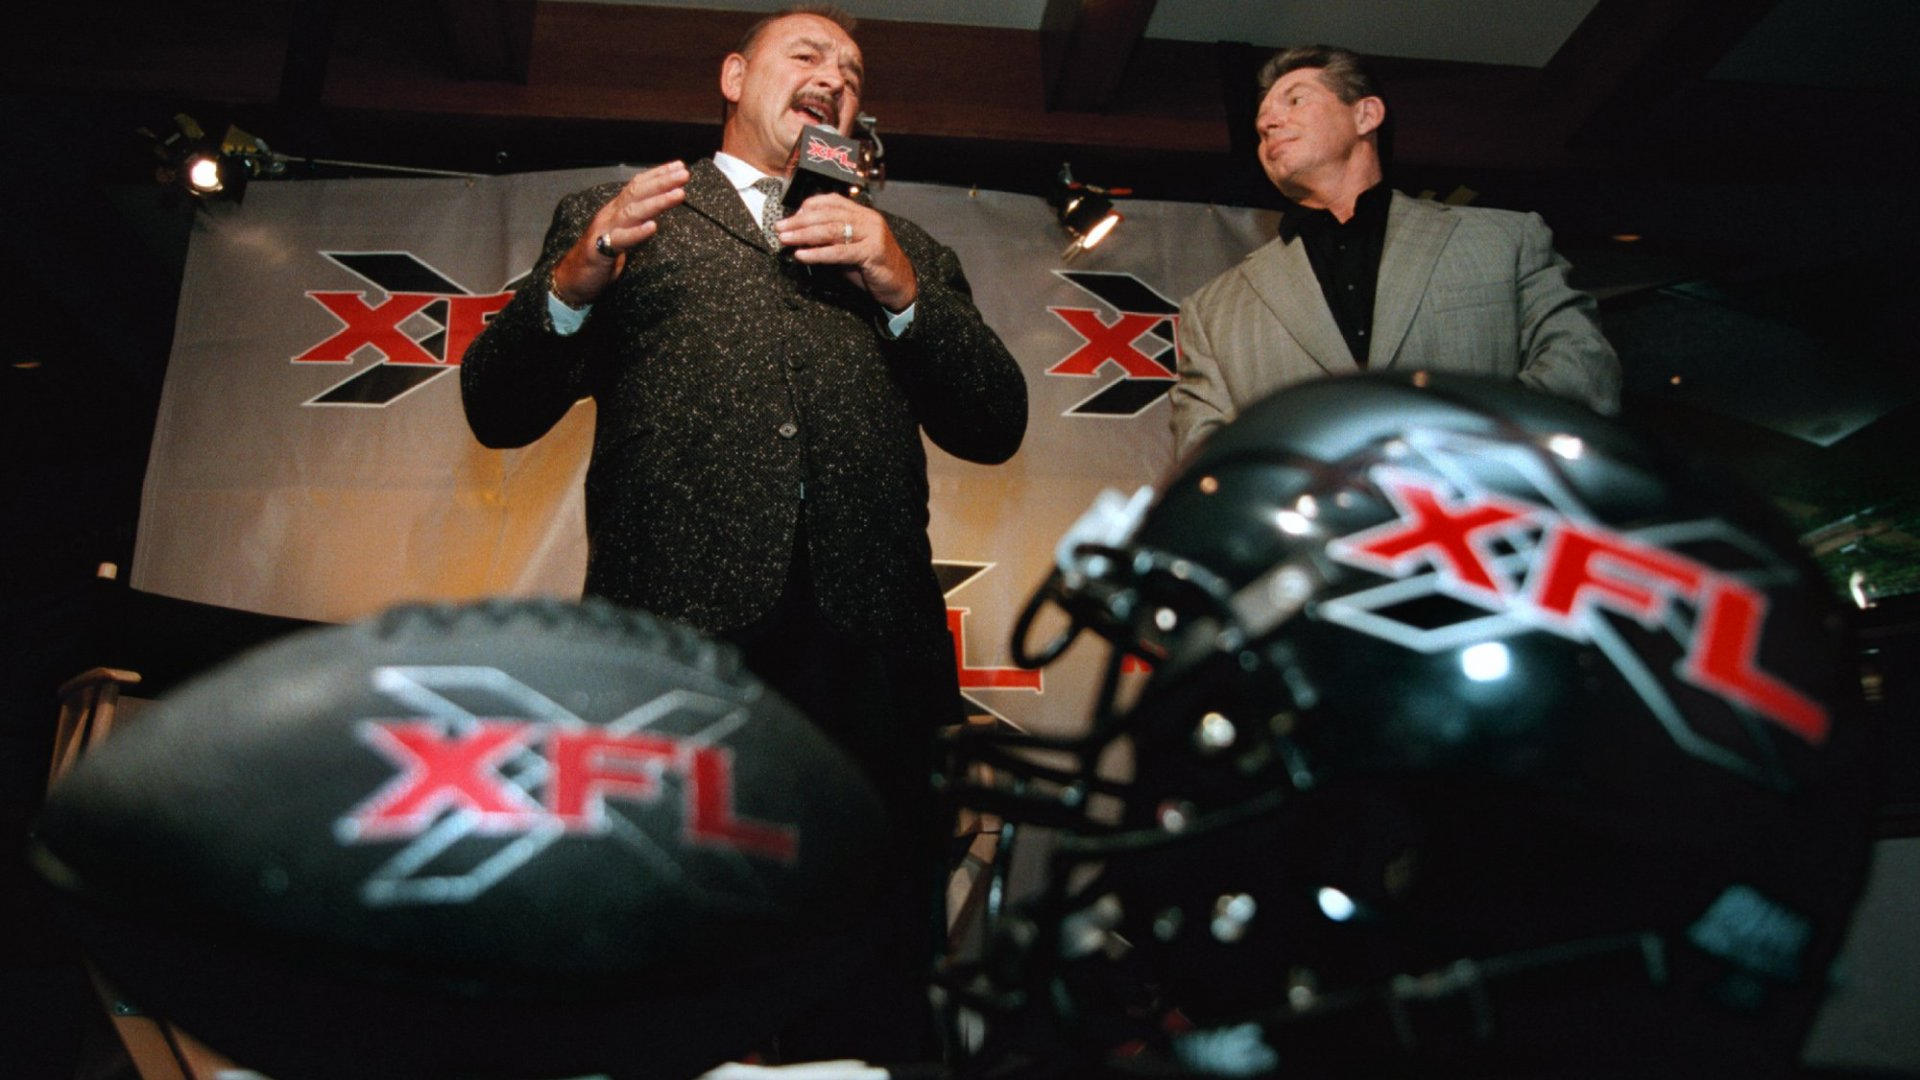 Vince McMahon (right), CEO of WWE, was one of the founders of the now-defunct XFL.